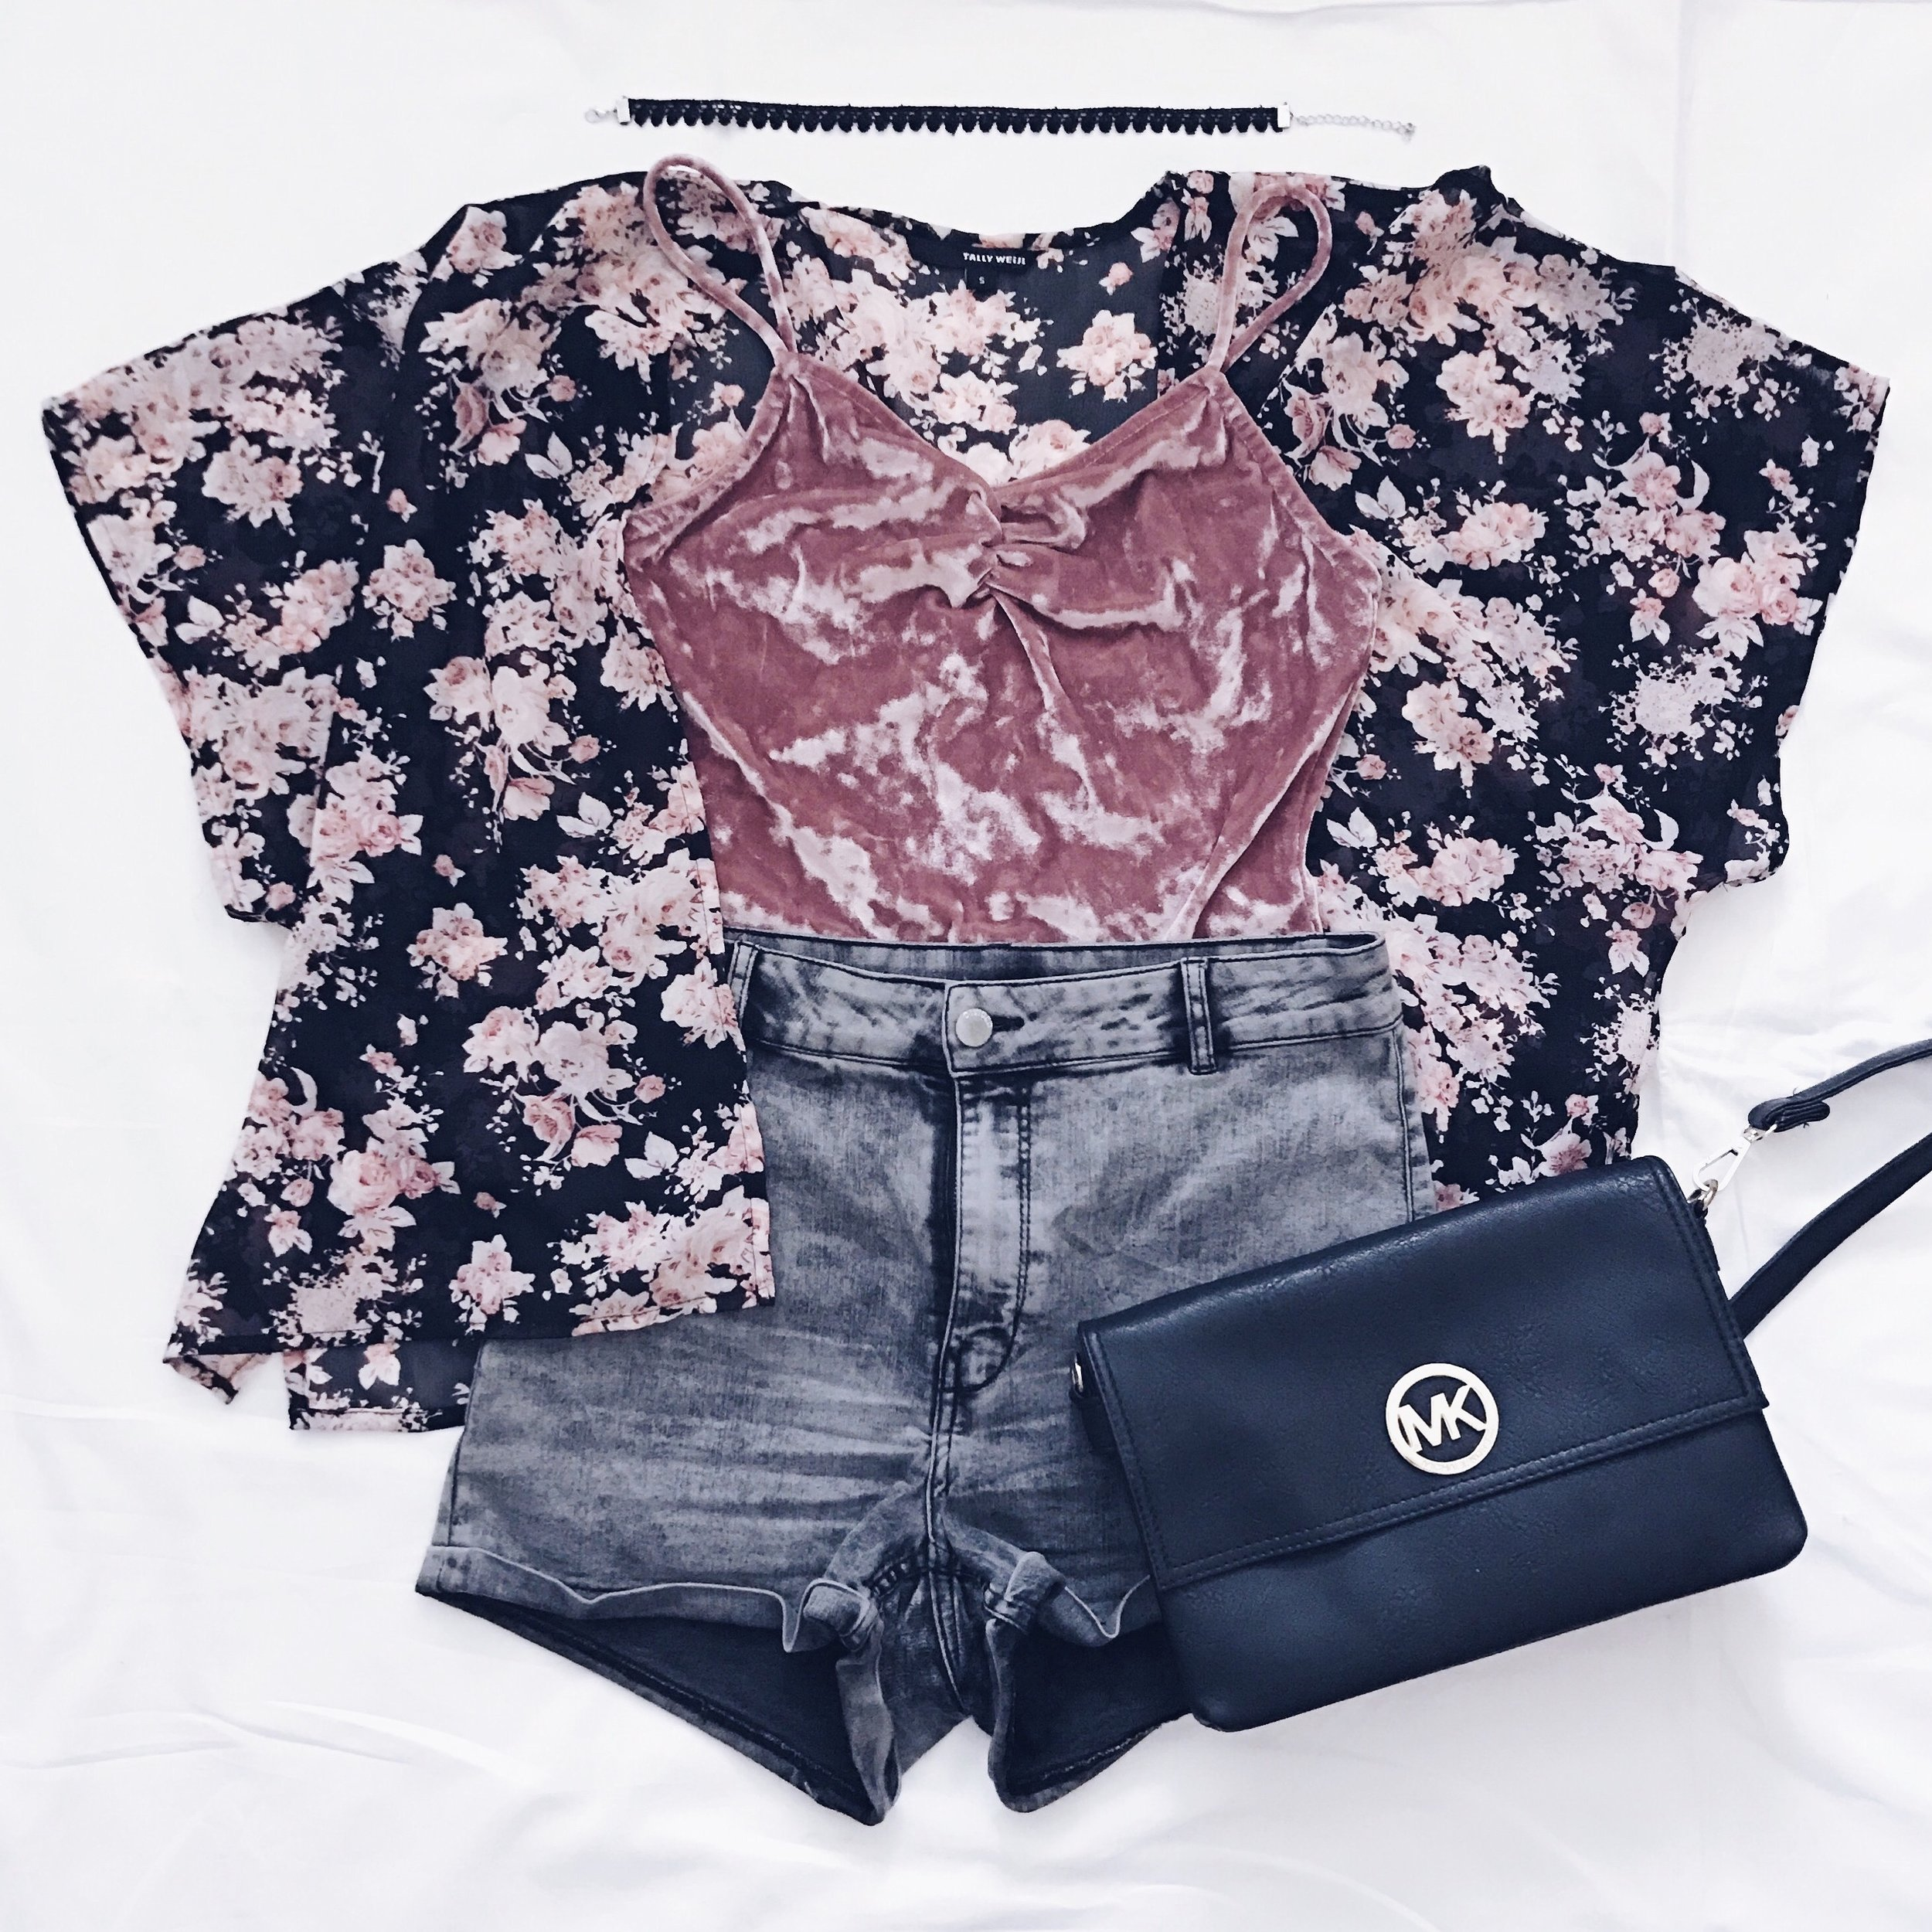 Dark Grey Denim Shorts: H&M    Floral Kimono & Crushed Velvet Bodysuit : Tally Weijl    Crossbody Bag: Michael Kors    Choker: Amazon